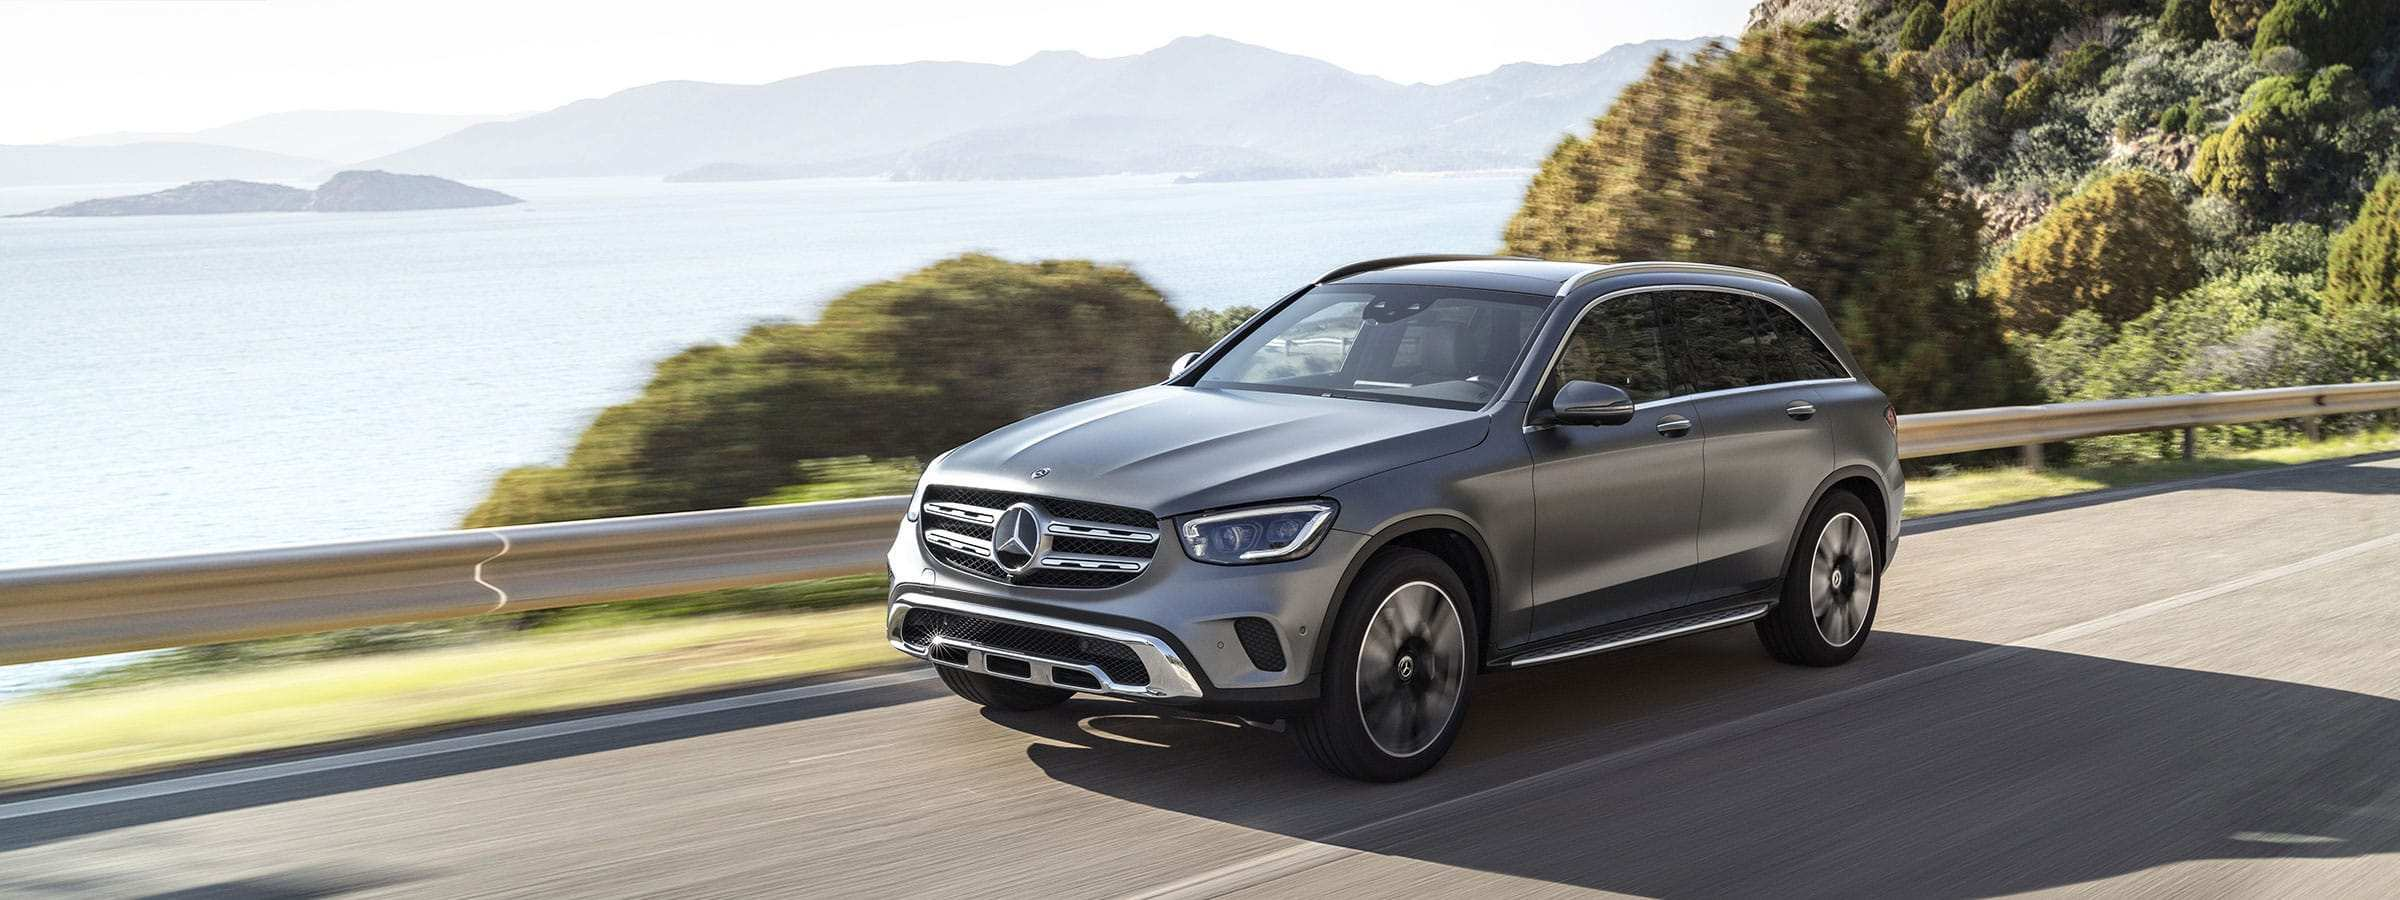 64 The Best 2020 Mercedes Glc Release Date